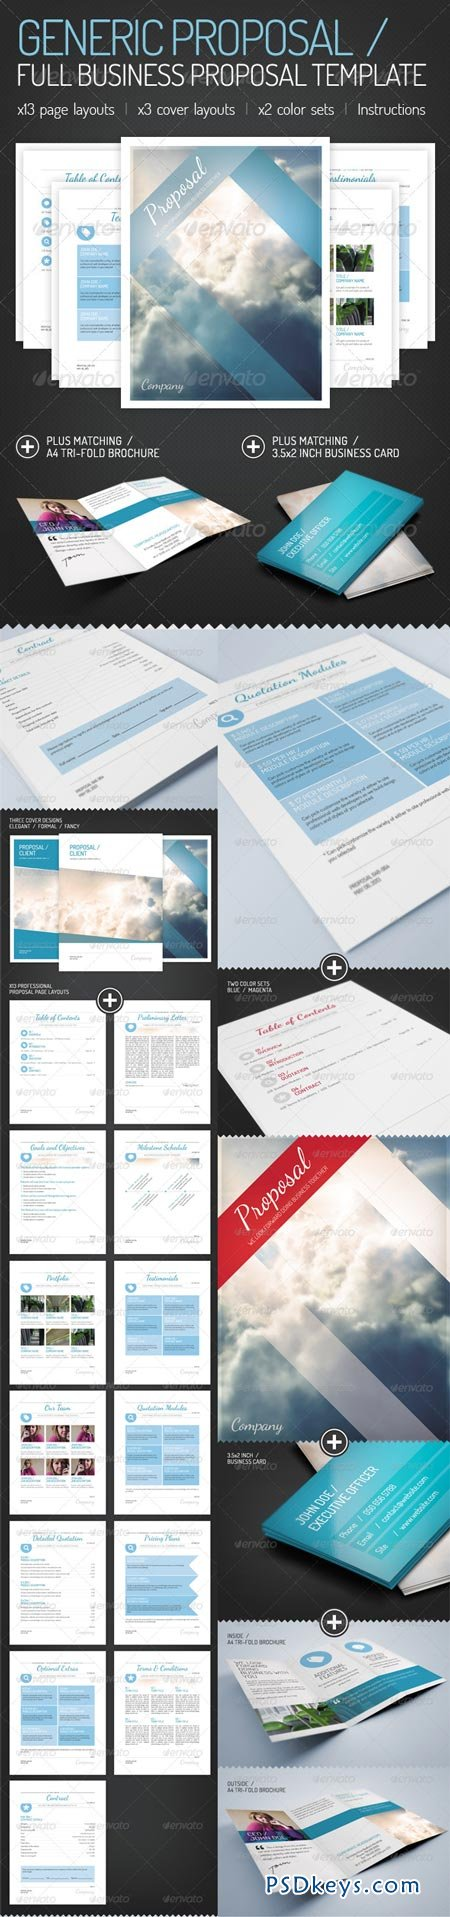 Generic Proposal   Full Business Proposal Template 2721064  Download Business Proposal Template